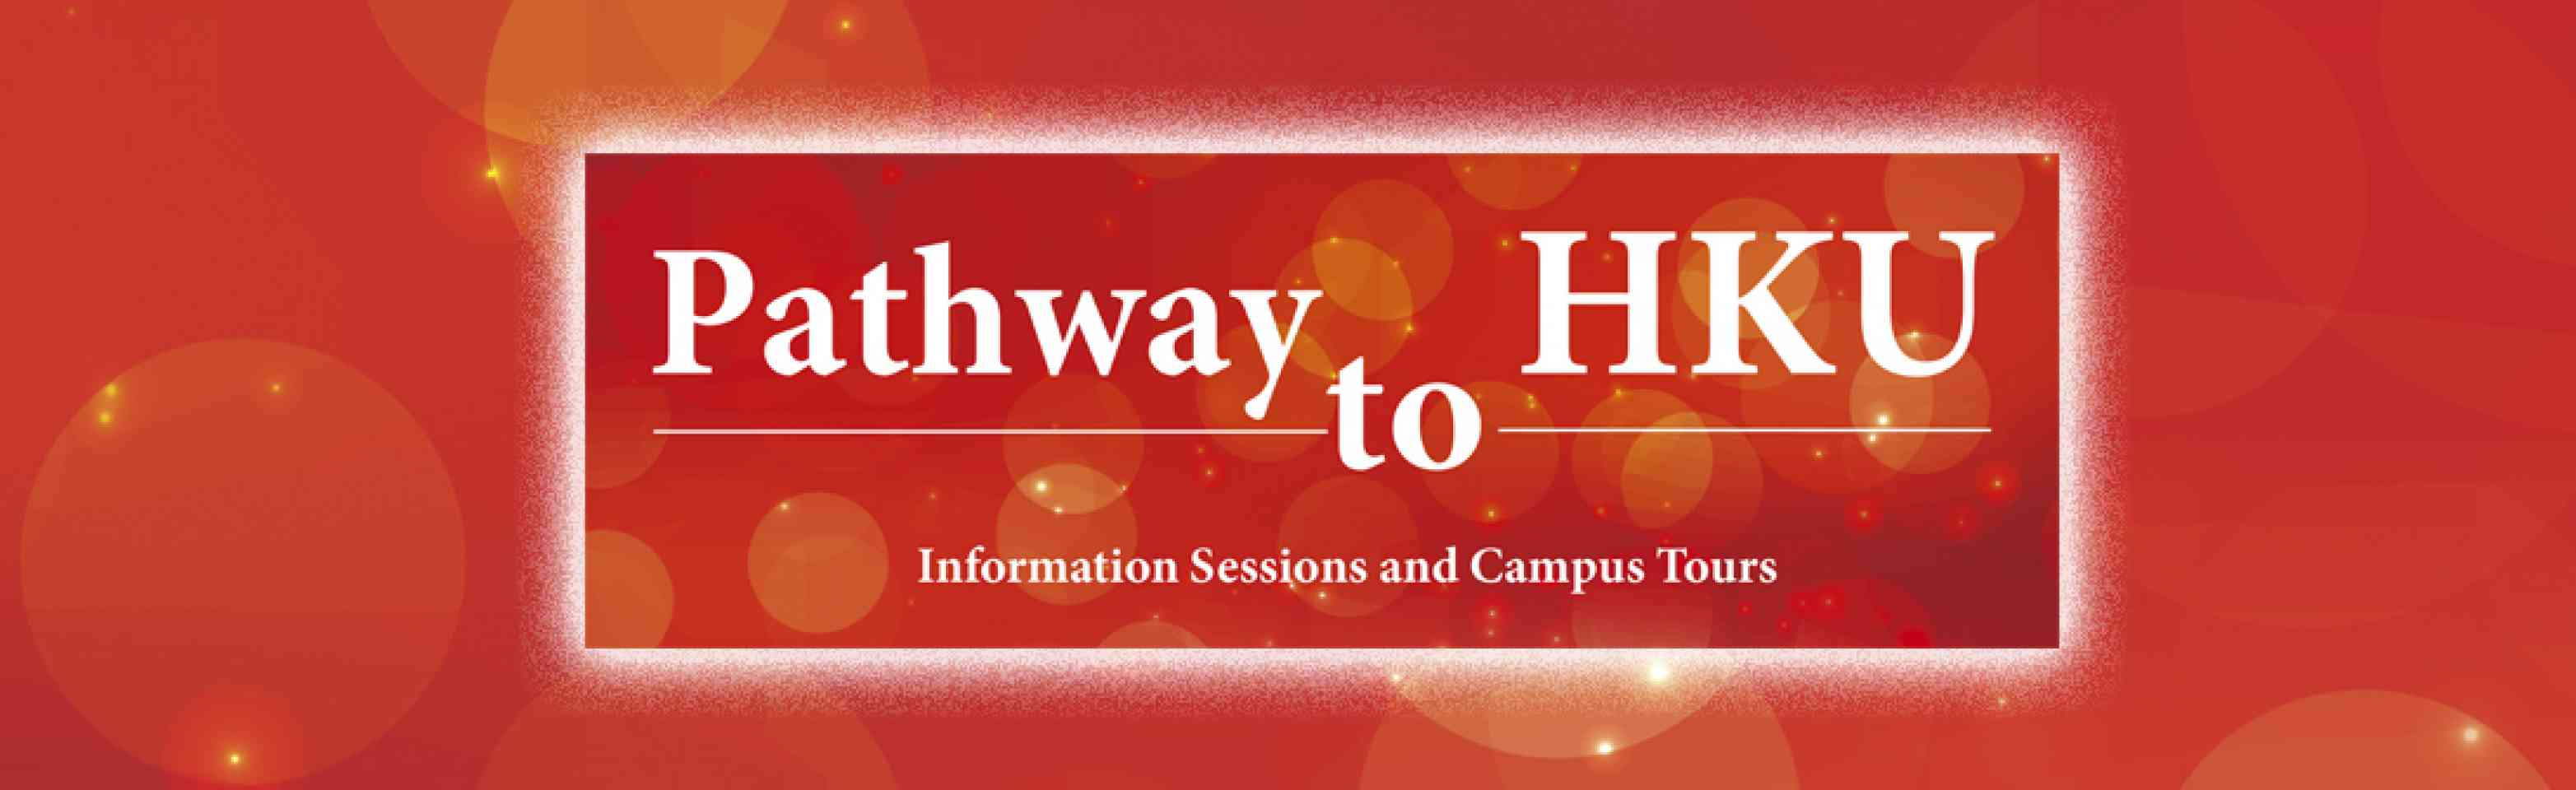 Pathway to hku 2018 banner